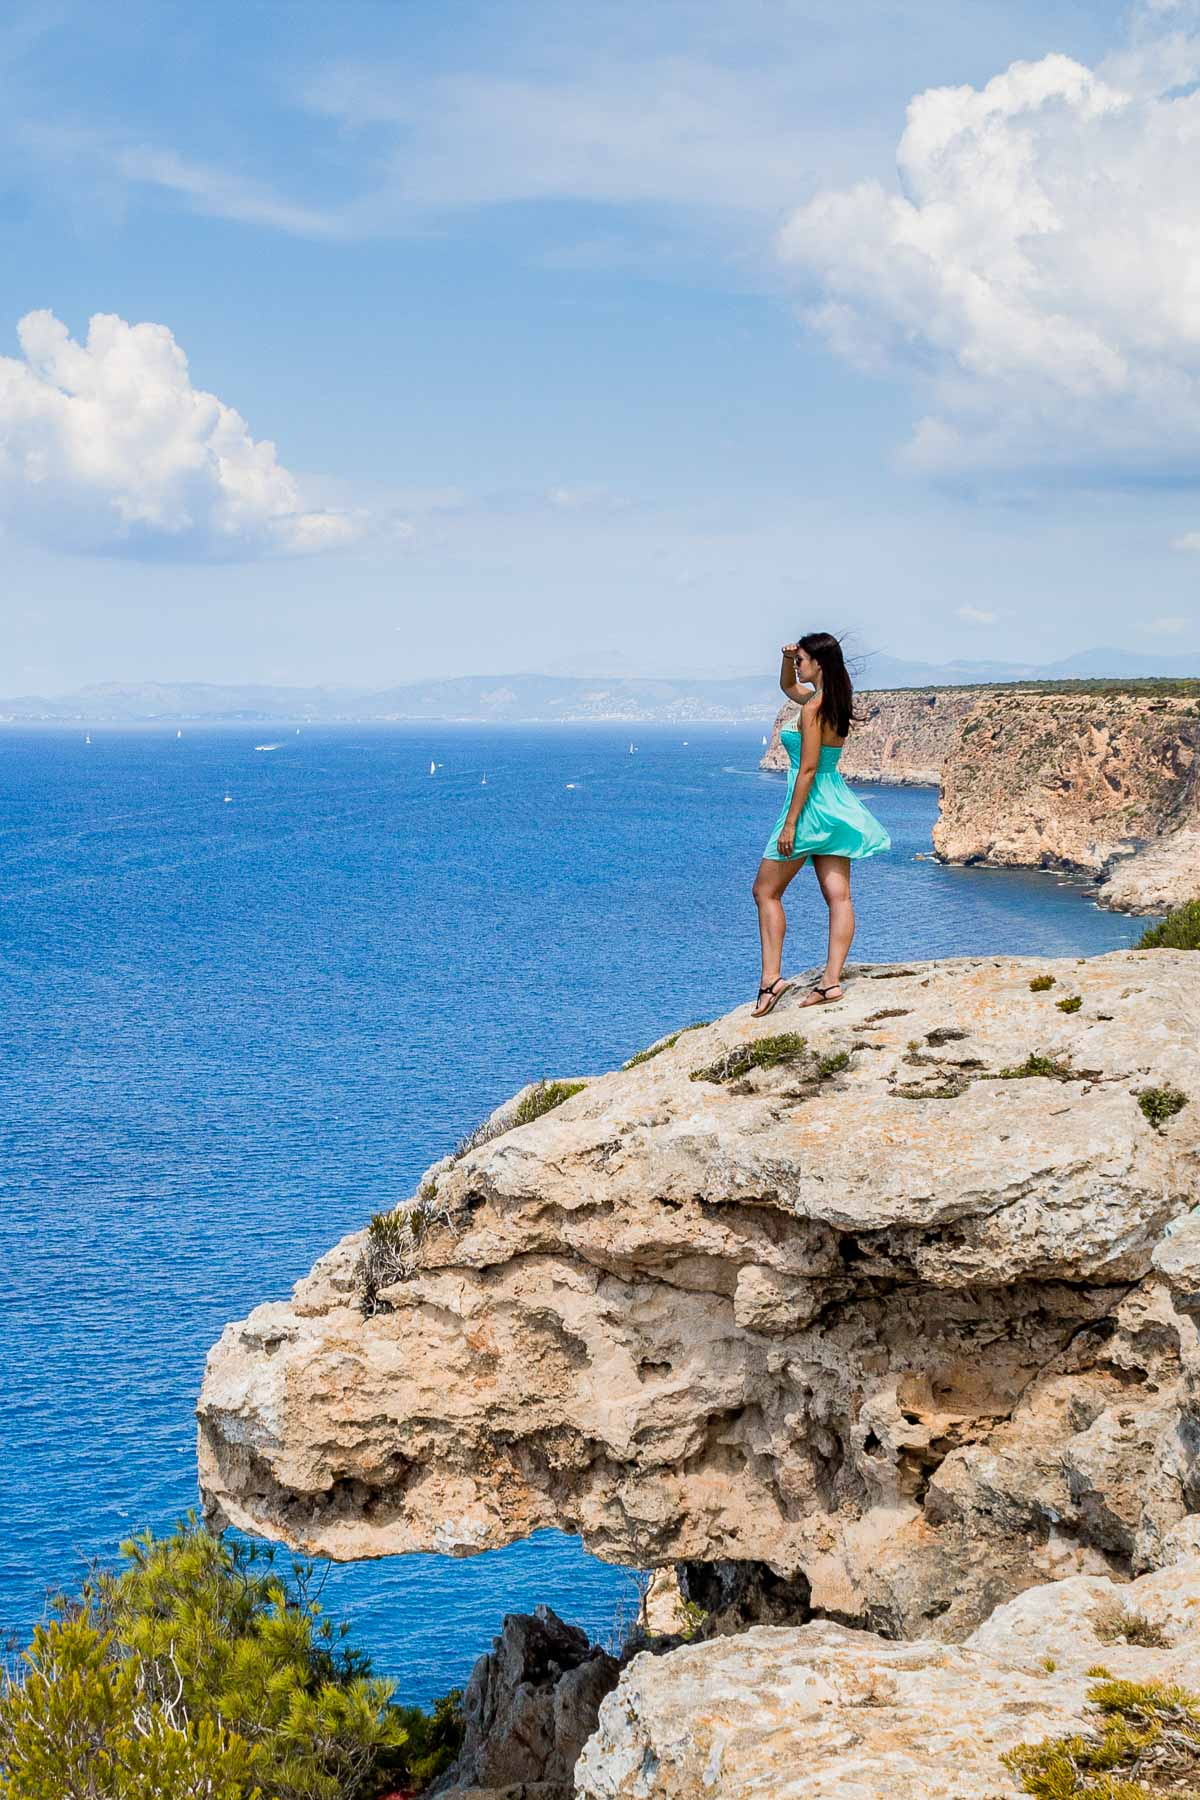 Girl in a blue dress standing on a rock at the coastline of Mallorca